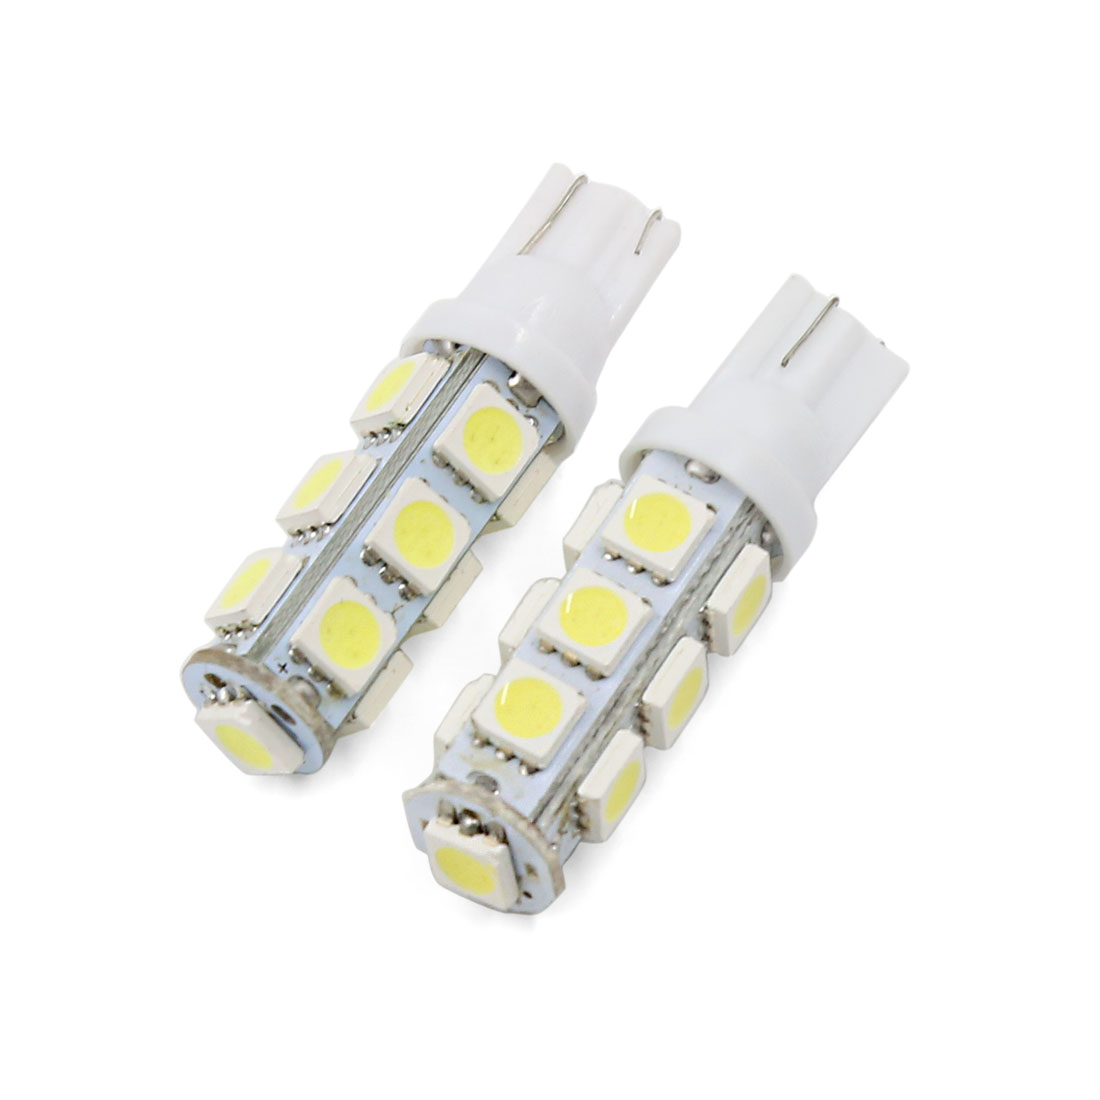 2 Pcs T10 W5W Car Bulbs 13-LED 5050 SMD White Lamp Parking Light Interior